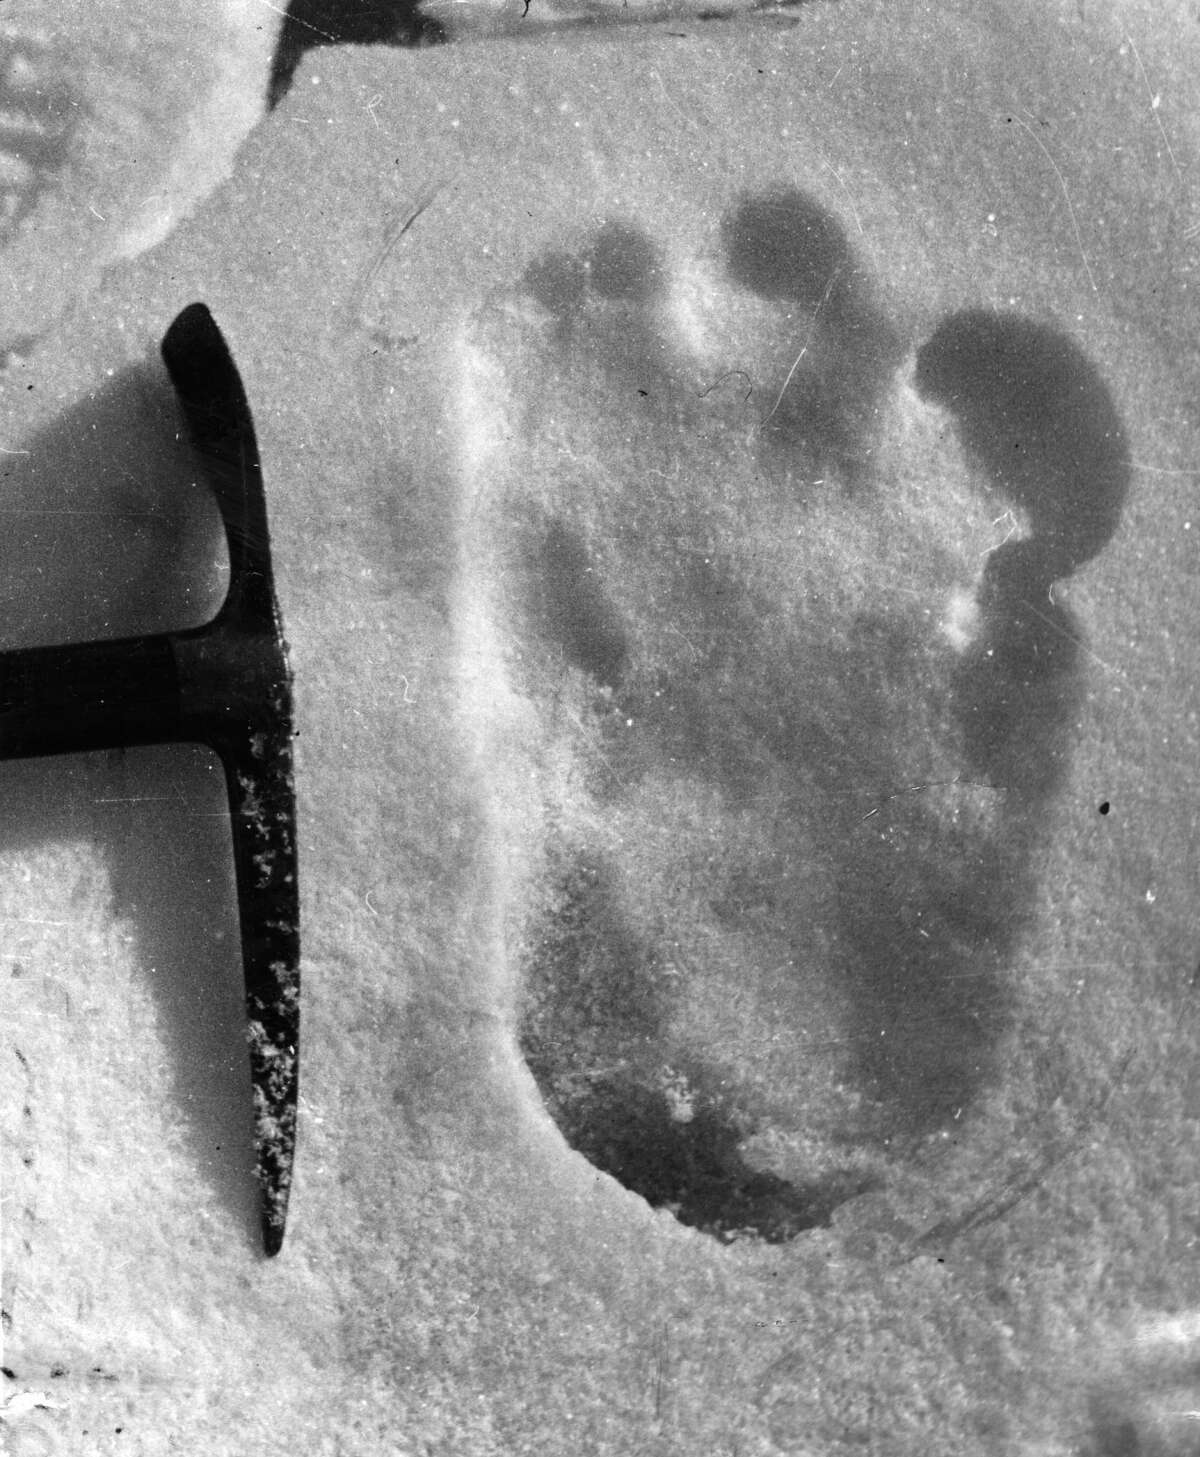 13th December 1951: The footprint of the Abominable Snowman, taken near Mount Everest. (Photo by Topical Press Agency/Getty Images)